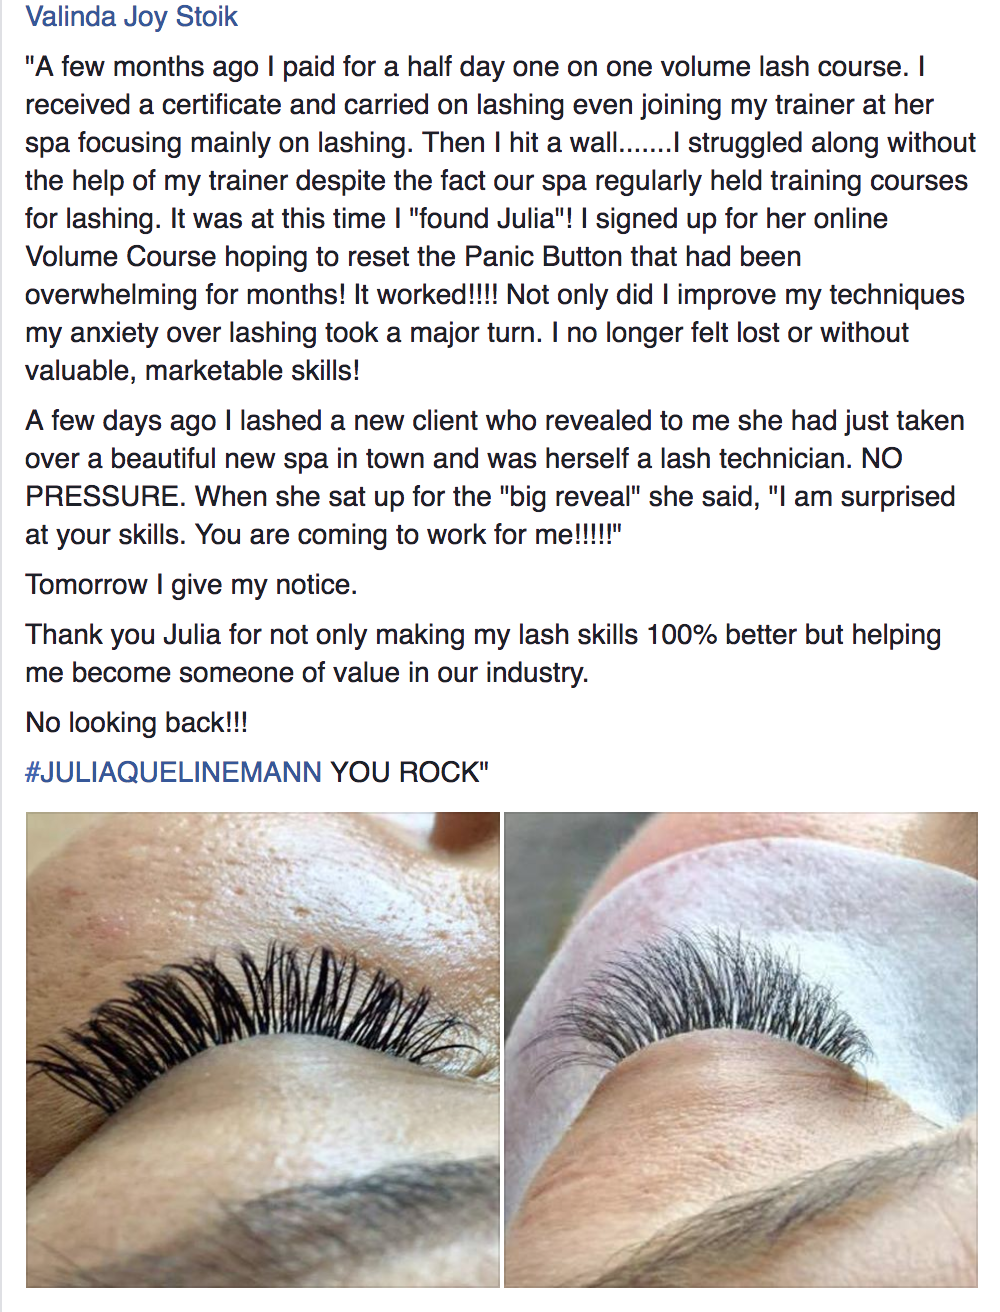 Volume lashes course training